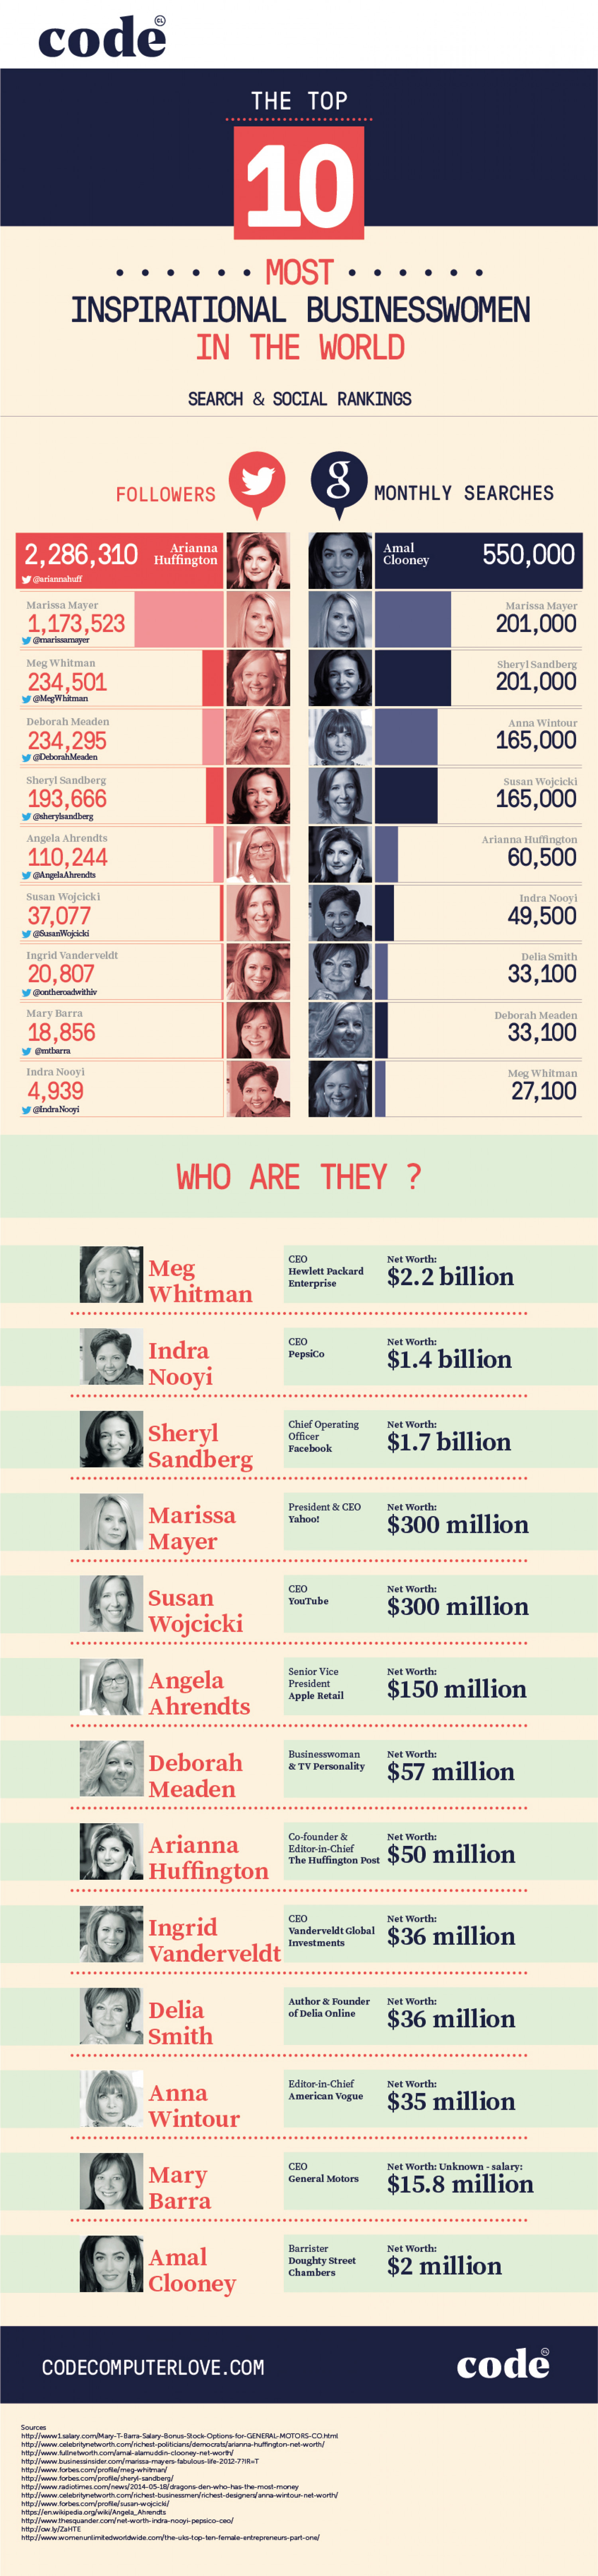 The world's top businesswomen ranked by Twitter followers & monthly Google searches Infographic